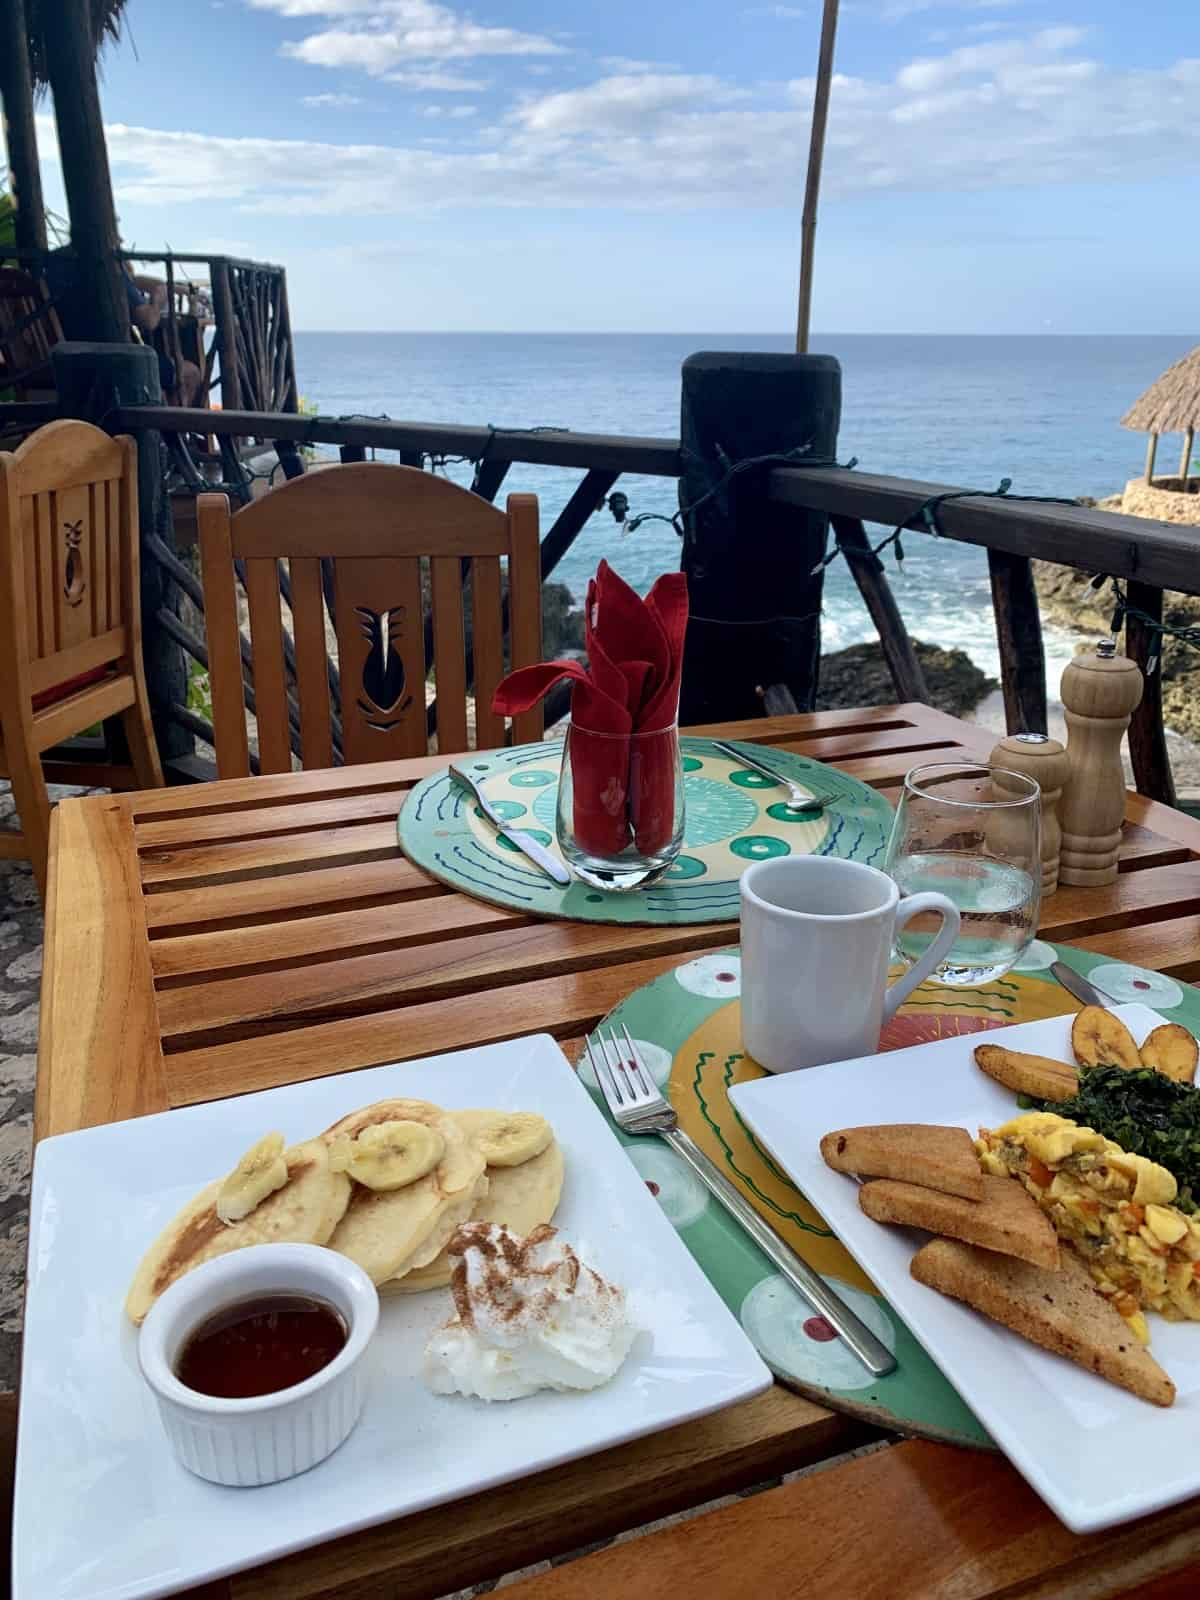 Banana pancakes are always the answer in Negril